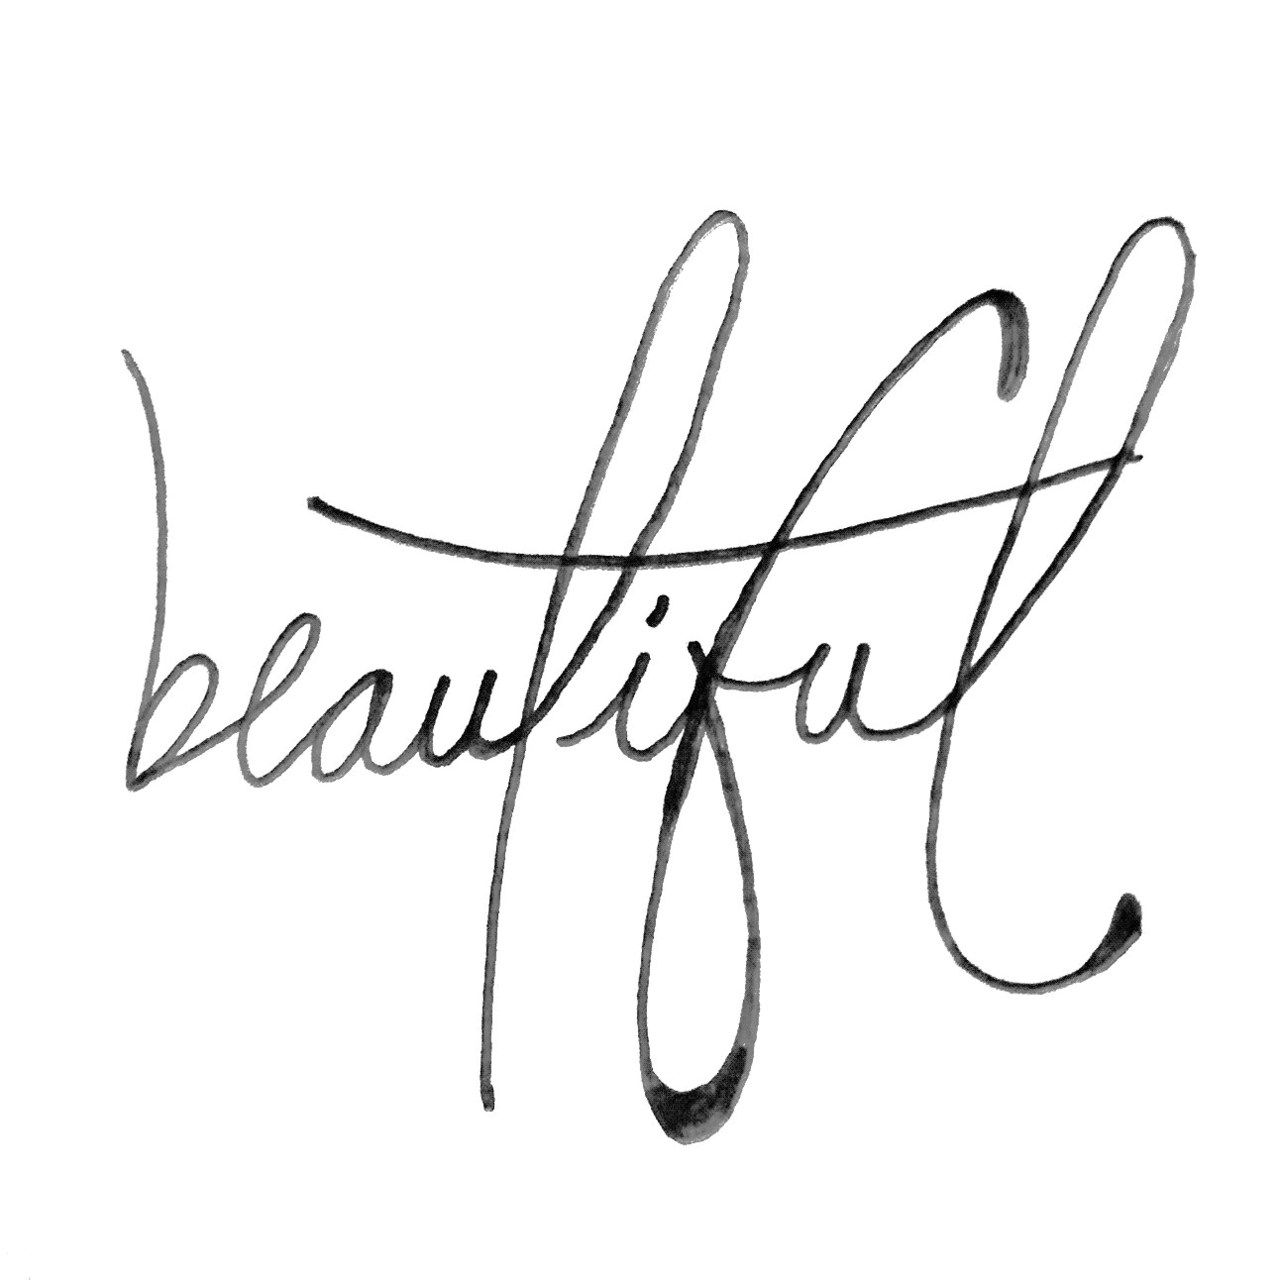 If there's one thing I've learned in life it's that it is like a mirror. Smile at it & it will smile back. And it's worth living every time rays of sun touch your face, every time someone makes you laugh. Because it's beautiful. You're beautiful.